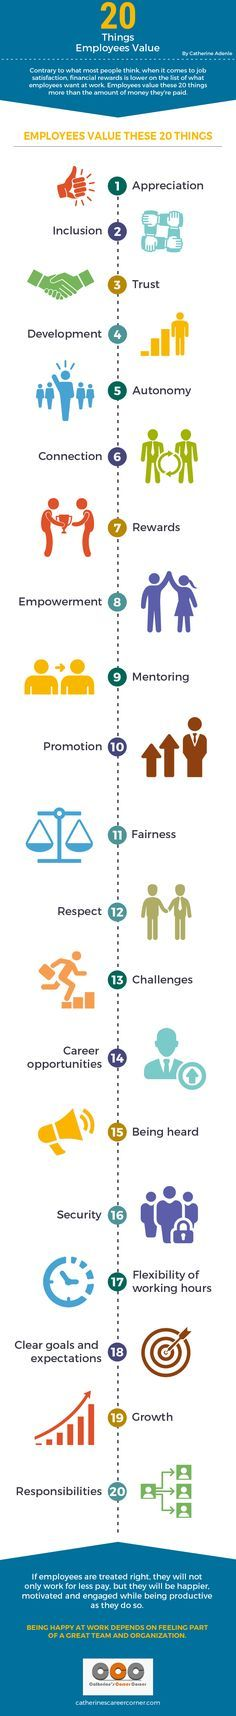 20 Things Employees Value (Infographic) via /catherineadenle/